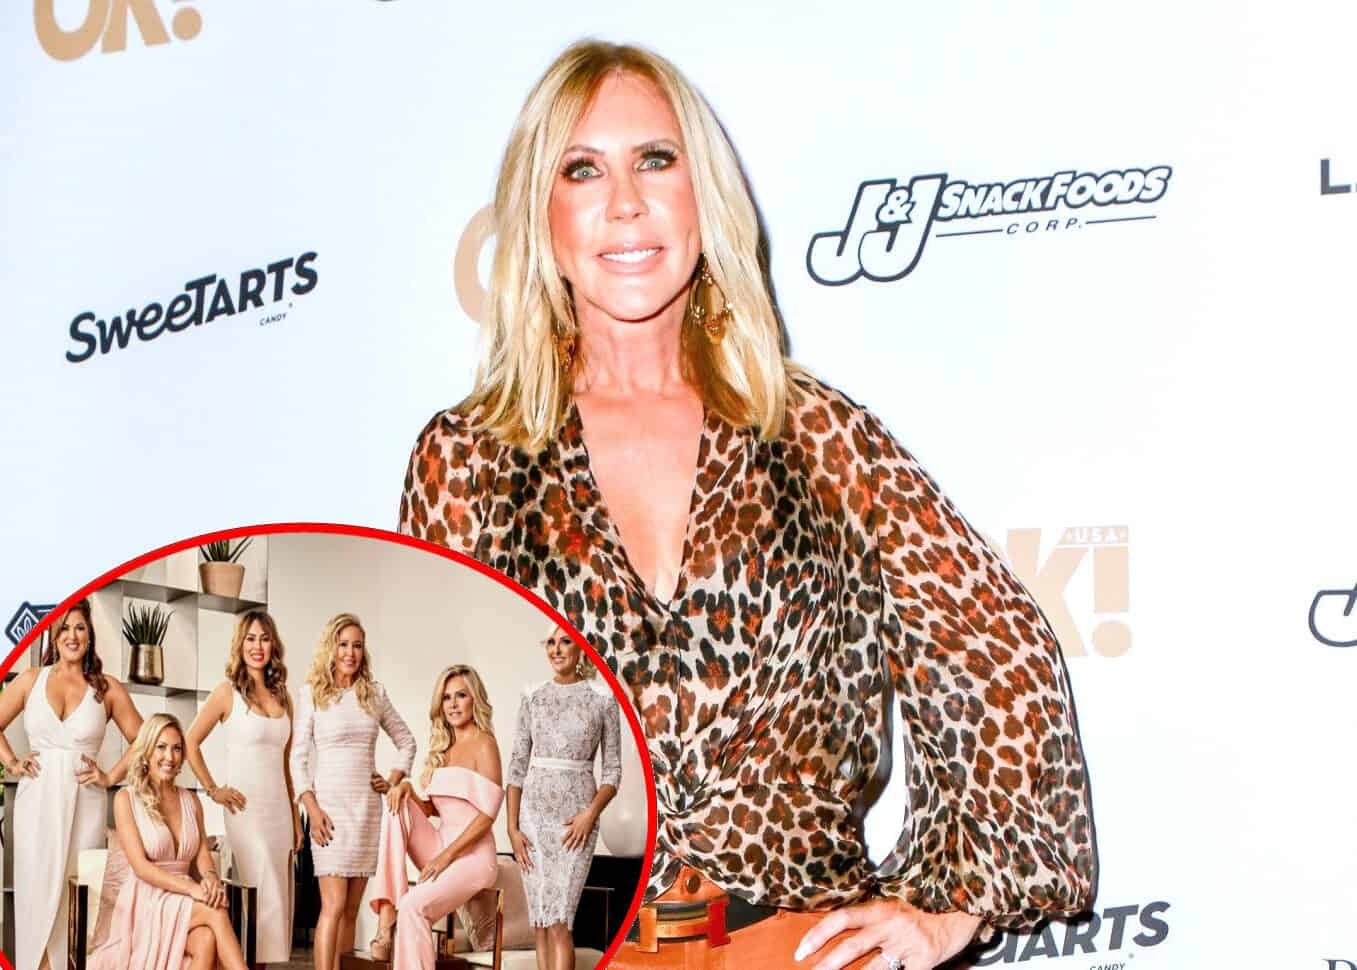 Vicki Gunvalson Explains Why She Told Fans to Boycott RHOC, Plus She Gives an Update on New Show With Tamra Judge and How it Originally Involved Shannon Beador